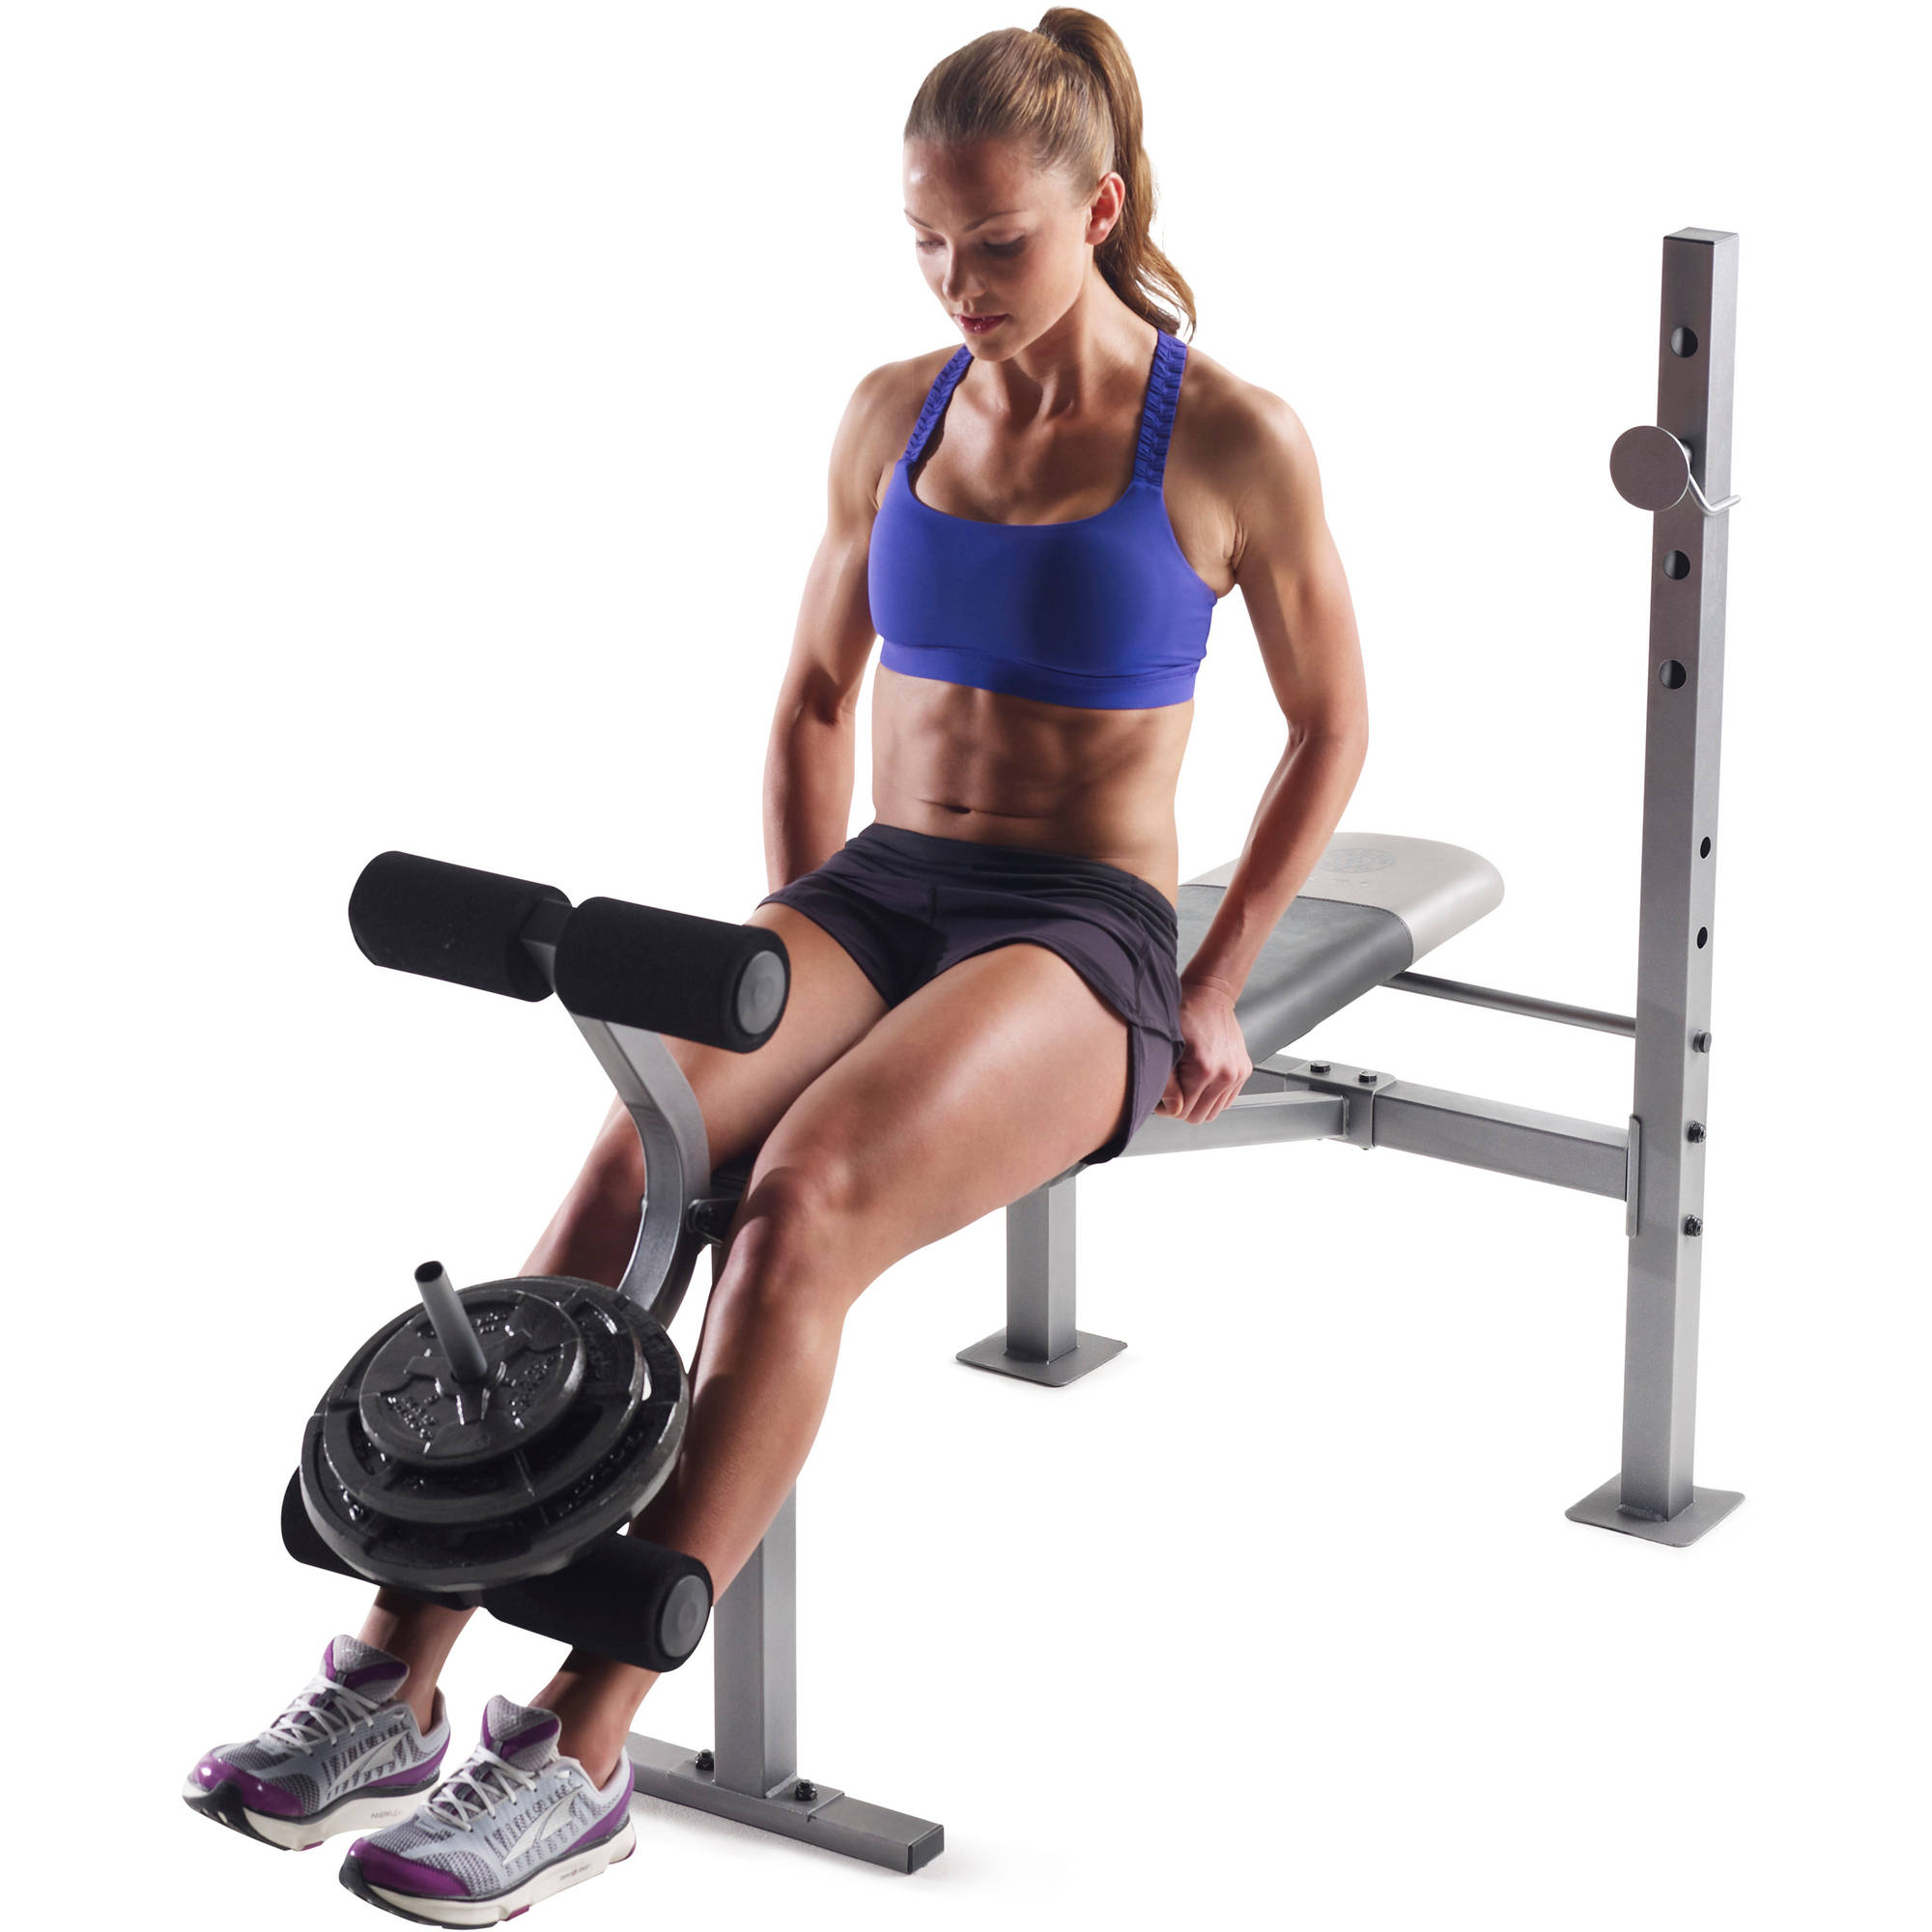 Home Exercise Equipment For Legs: Weight Bench Home Exercise Workout Multi Use Lifting Press